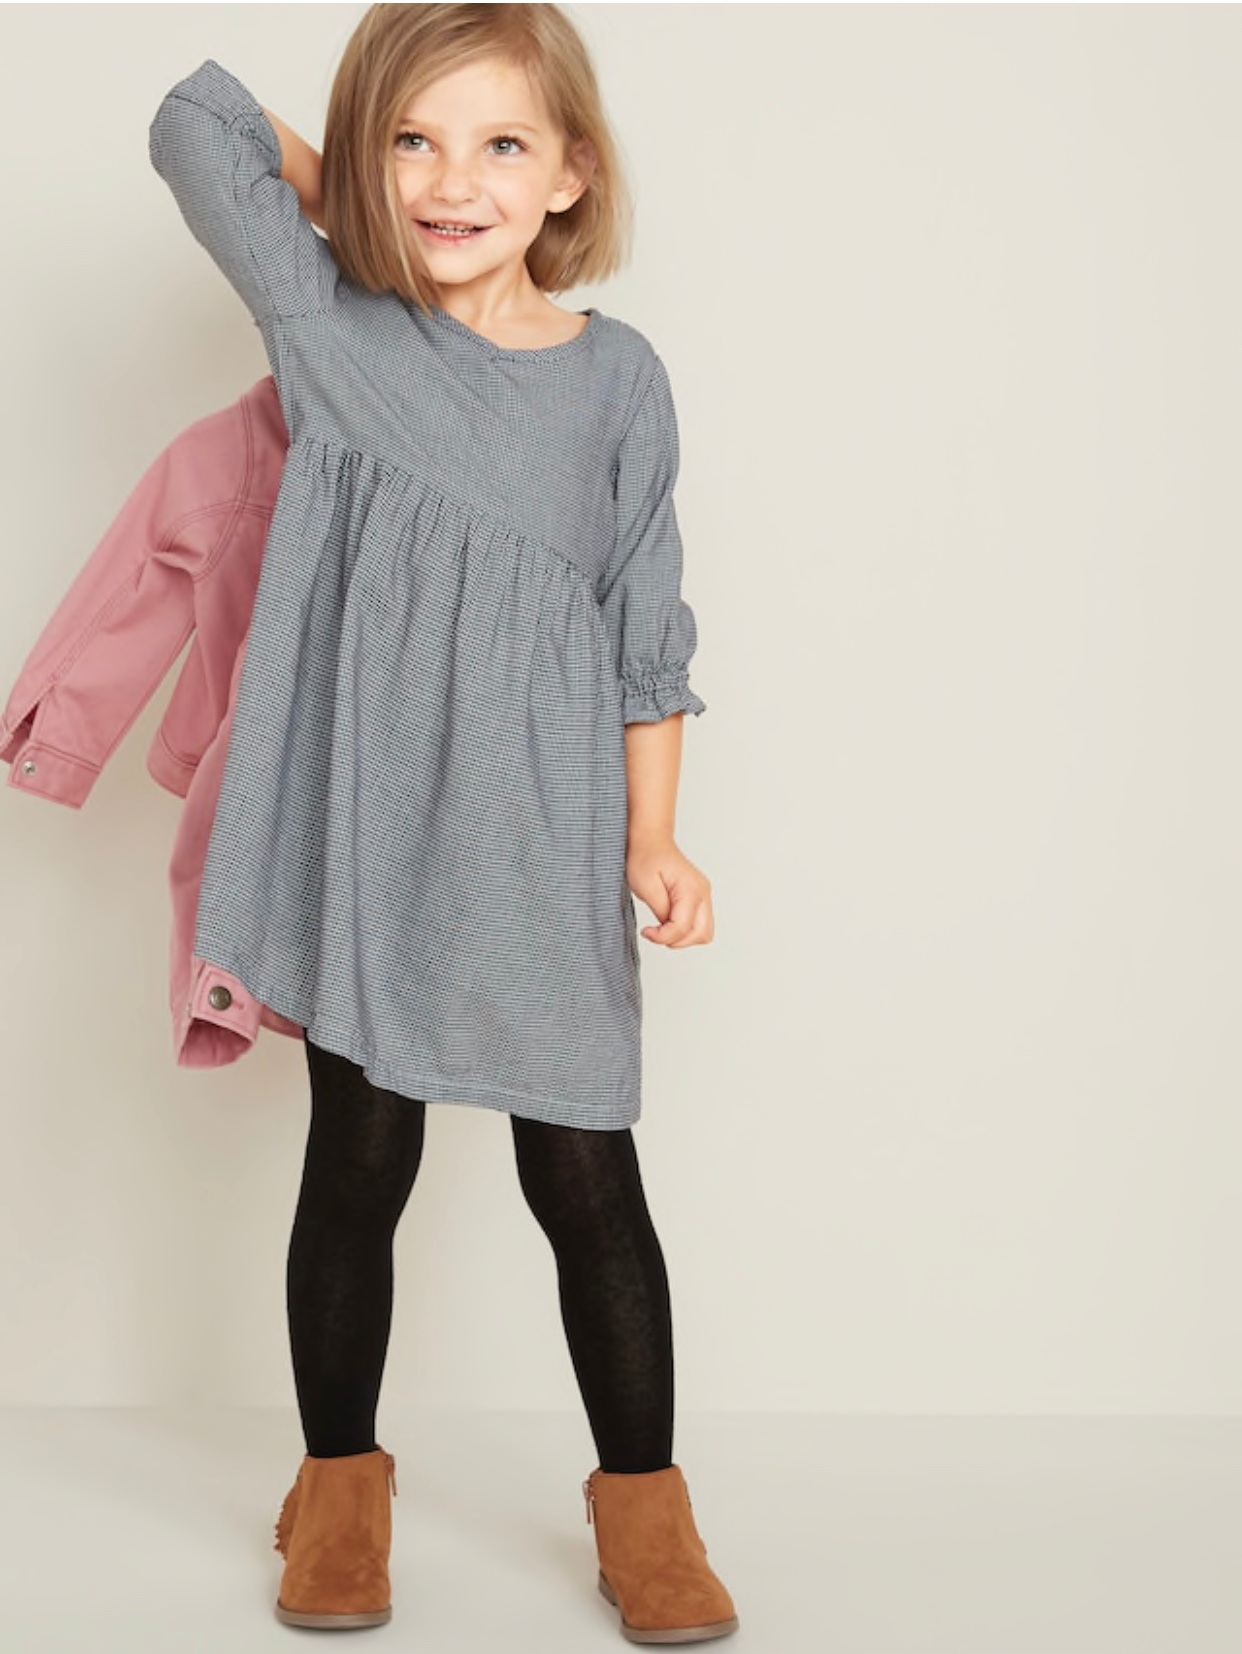 - Love this houndstooth dress for Caroline for back to school!Find it here.